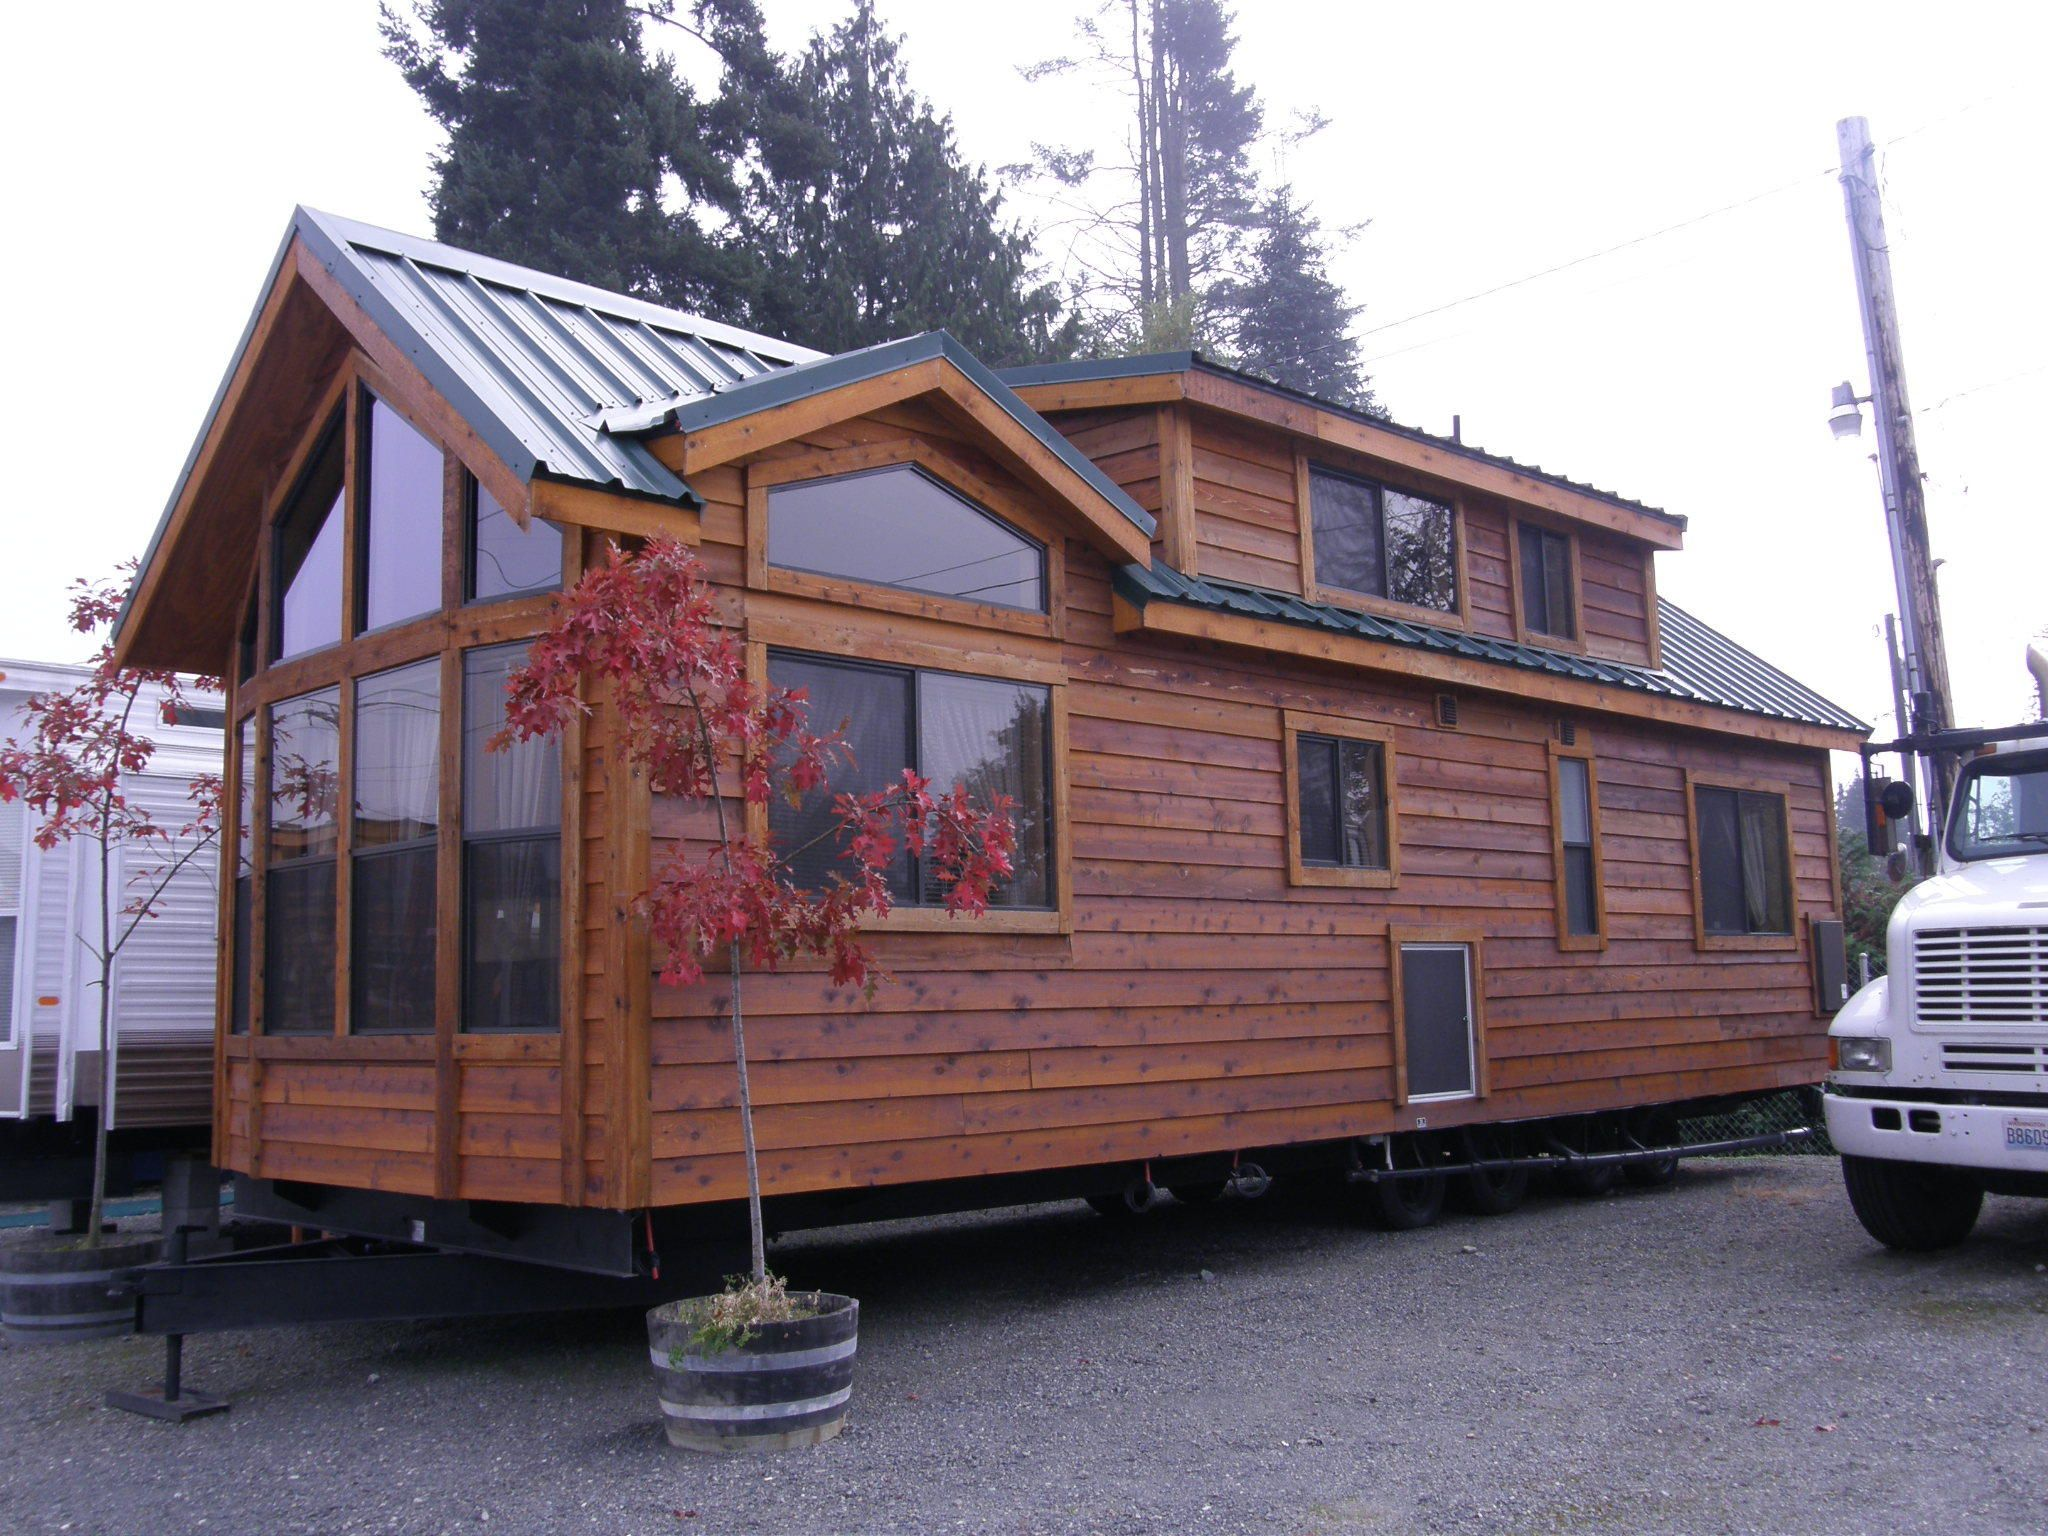 Little Houses On Wheels 40 best tiny homes images on pinterest | tiny living, tiny house